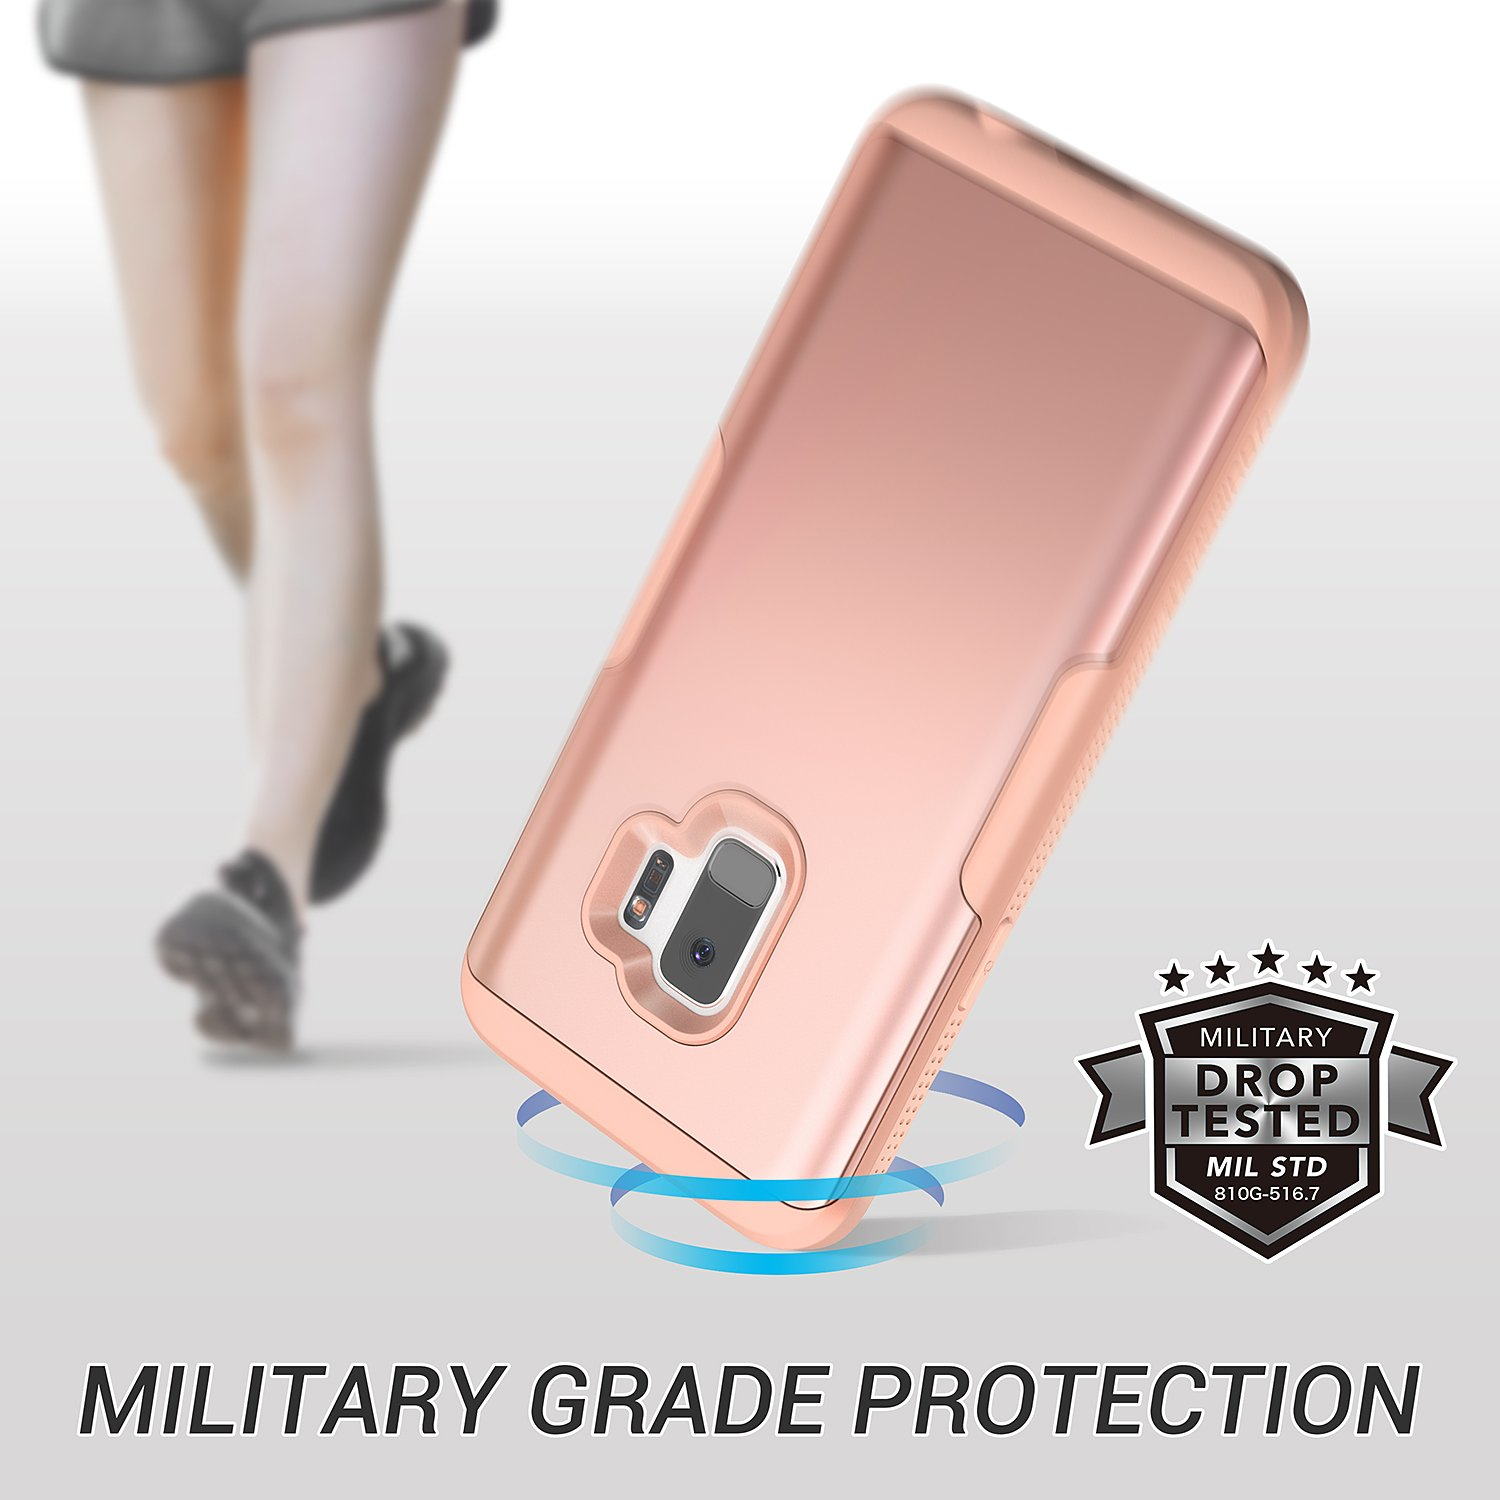 Galaxy S9 Case, YOUMAKER Rose Gold with Built-in Screen Protector Heavy Duty Protection Shockproof Slim Fit Full Body Case Cover for Samsung Galaxy S9 5.8 inch (2018) - Rose Gold/Pink by YOUMAKER (Image #2)